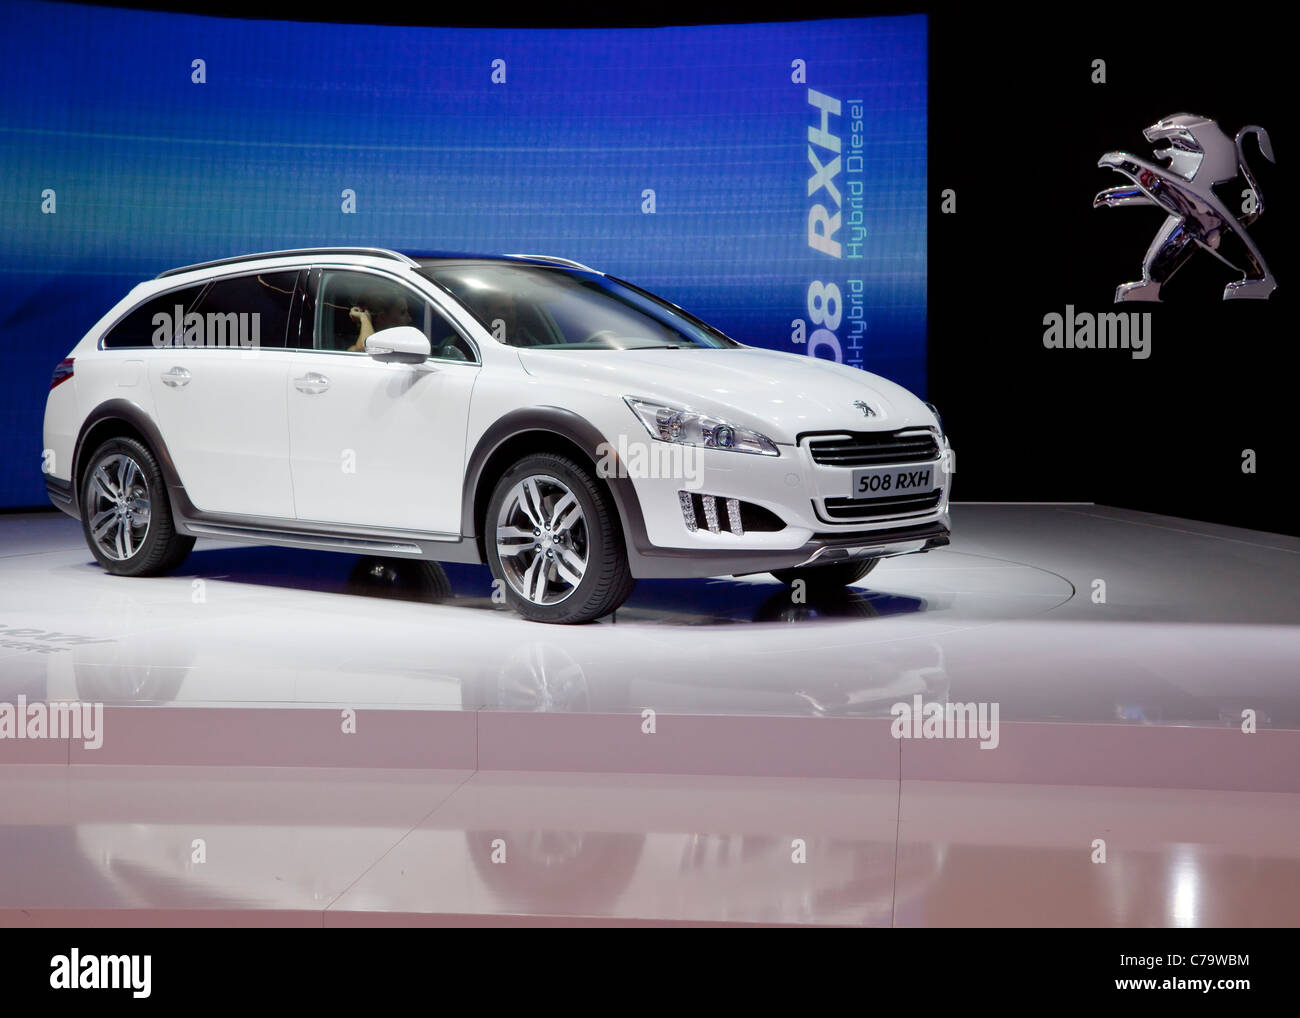 New Peugeot 508 RXH Diesel Hybrid Car on the IAA 2011 International Motor Show in Frankfurt am Main, Germany - Stock Image